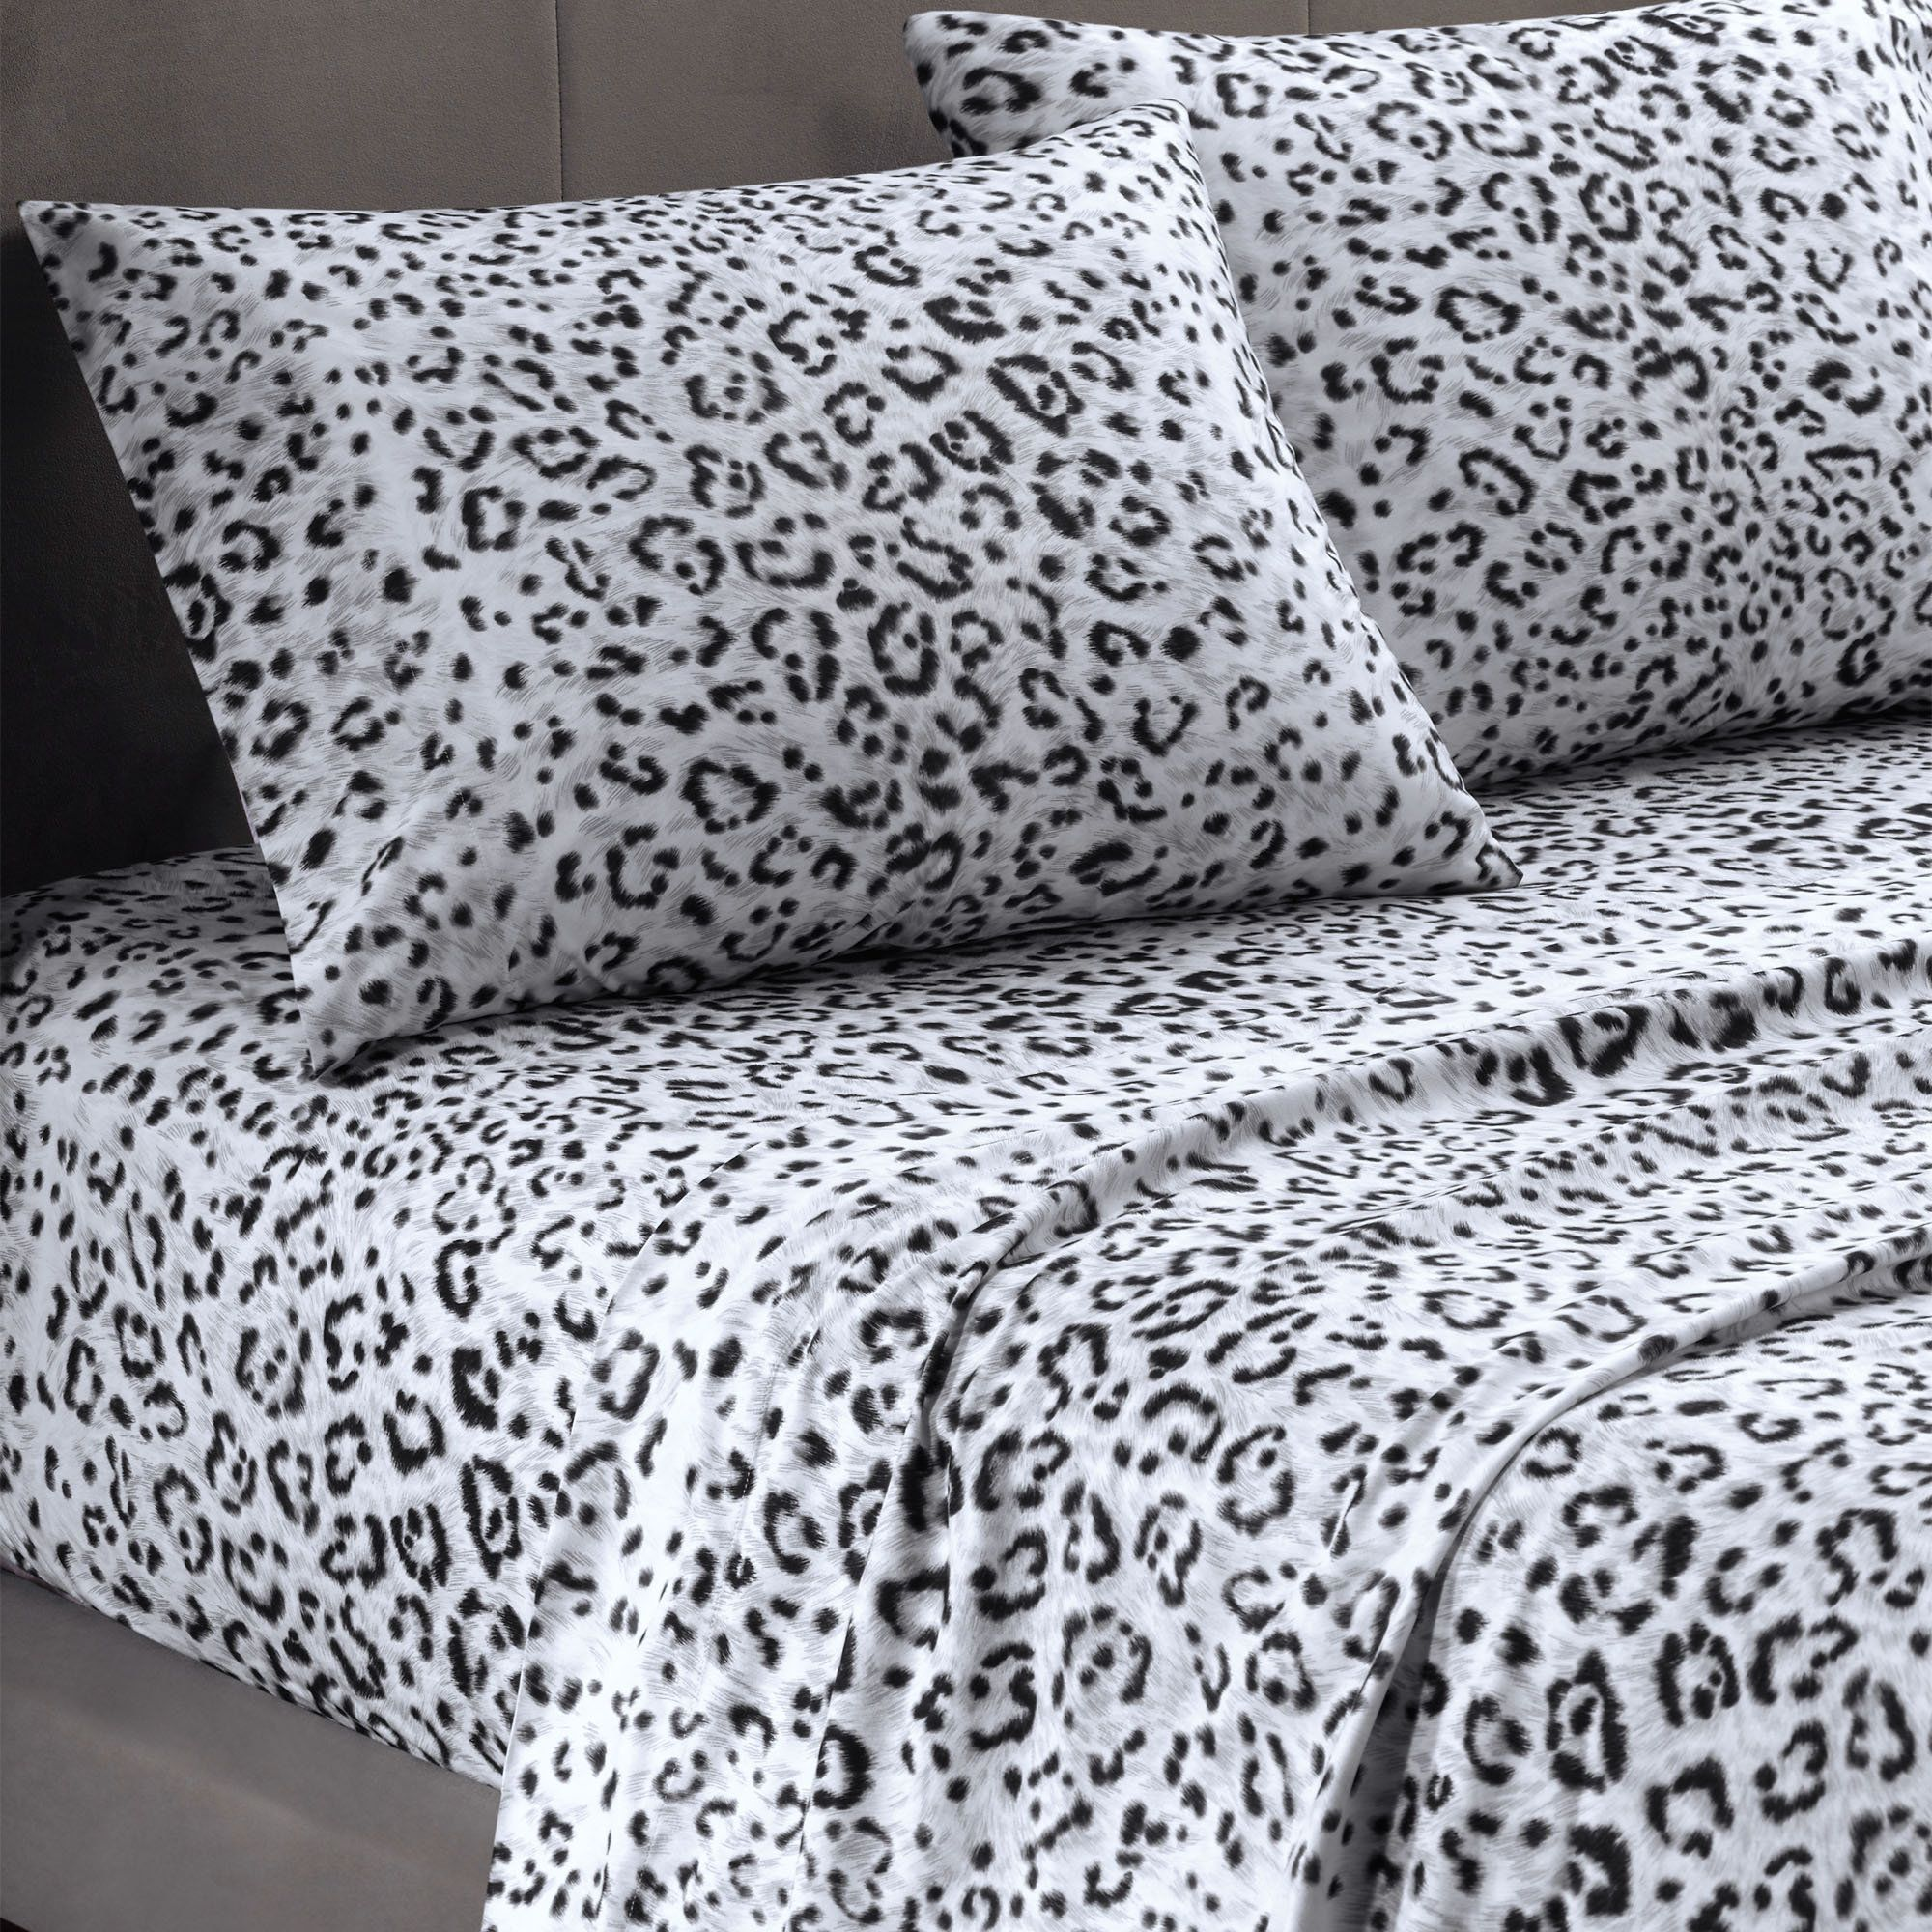 Leopard print and red bedding - Cozy Spun Snow Leopard Print Sheet Set